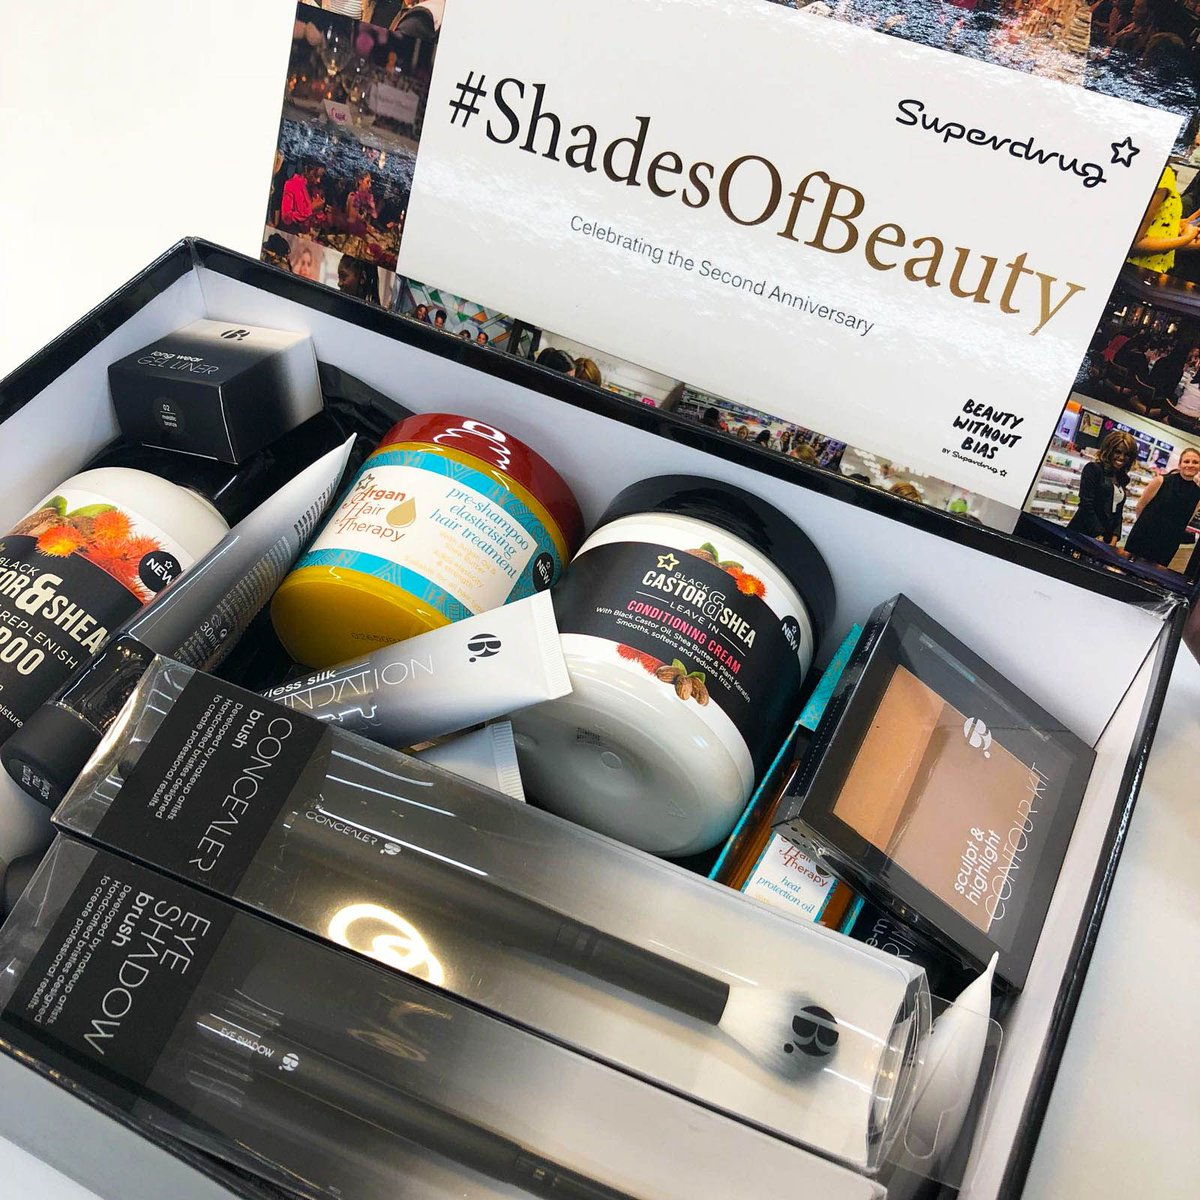 RT &amp; follow @superdrug 2 #WIN a Shades of Beauty Box filled with Own Brand &amp; @officialbbeauty goodies! Competition ends 23:59 14/08/18, T&amp;Cs apply please see bio <br>http://pic.twitter.com/HFKQNzQVAG